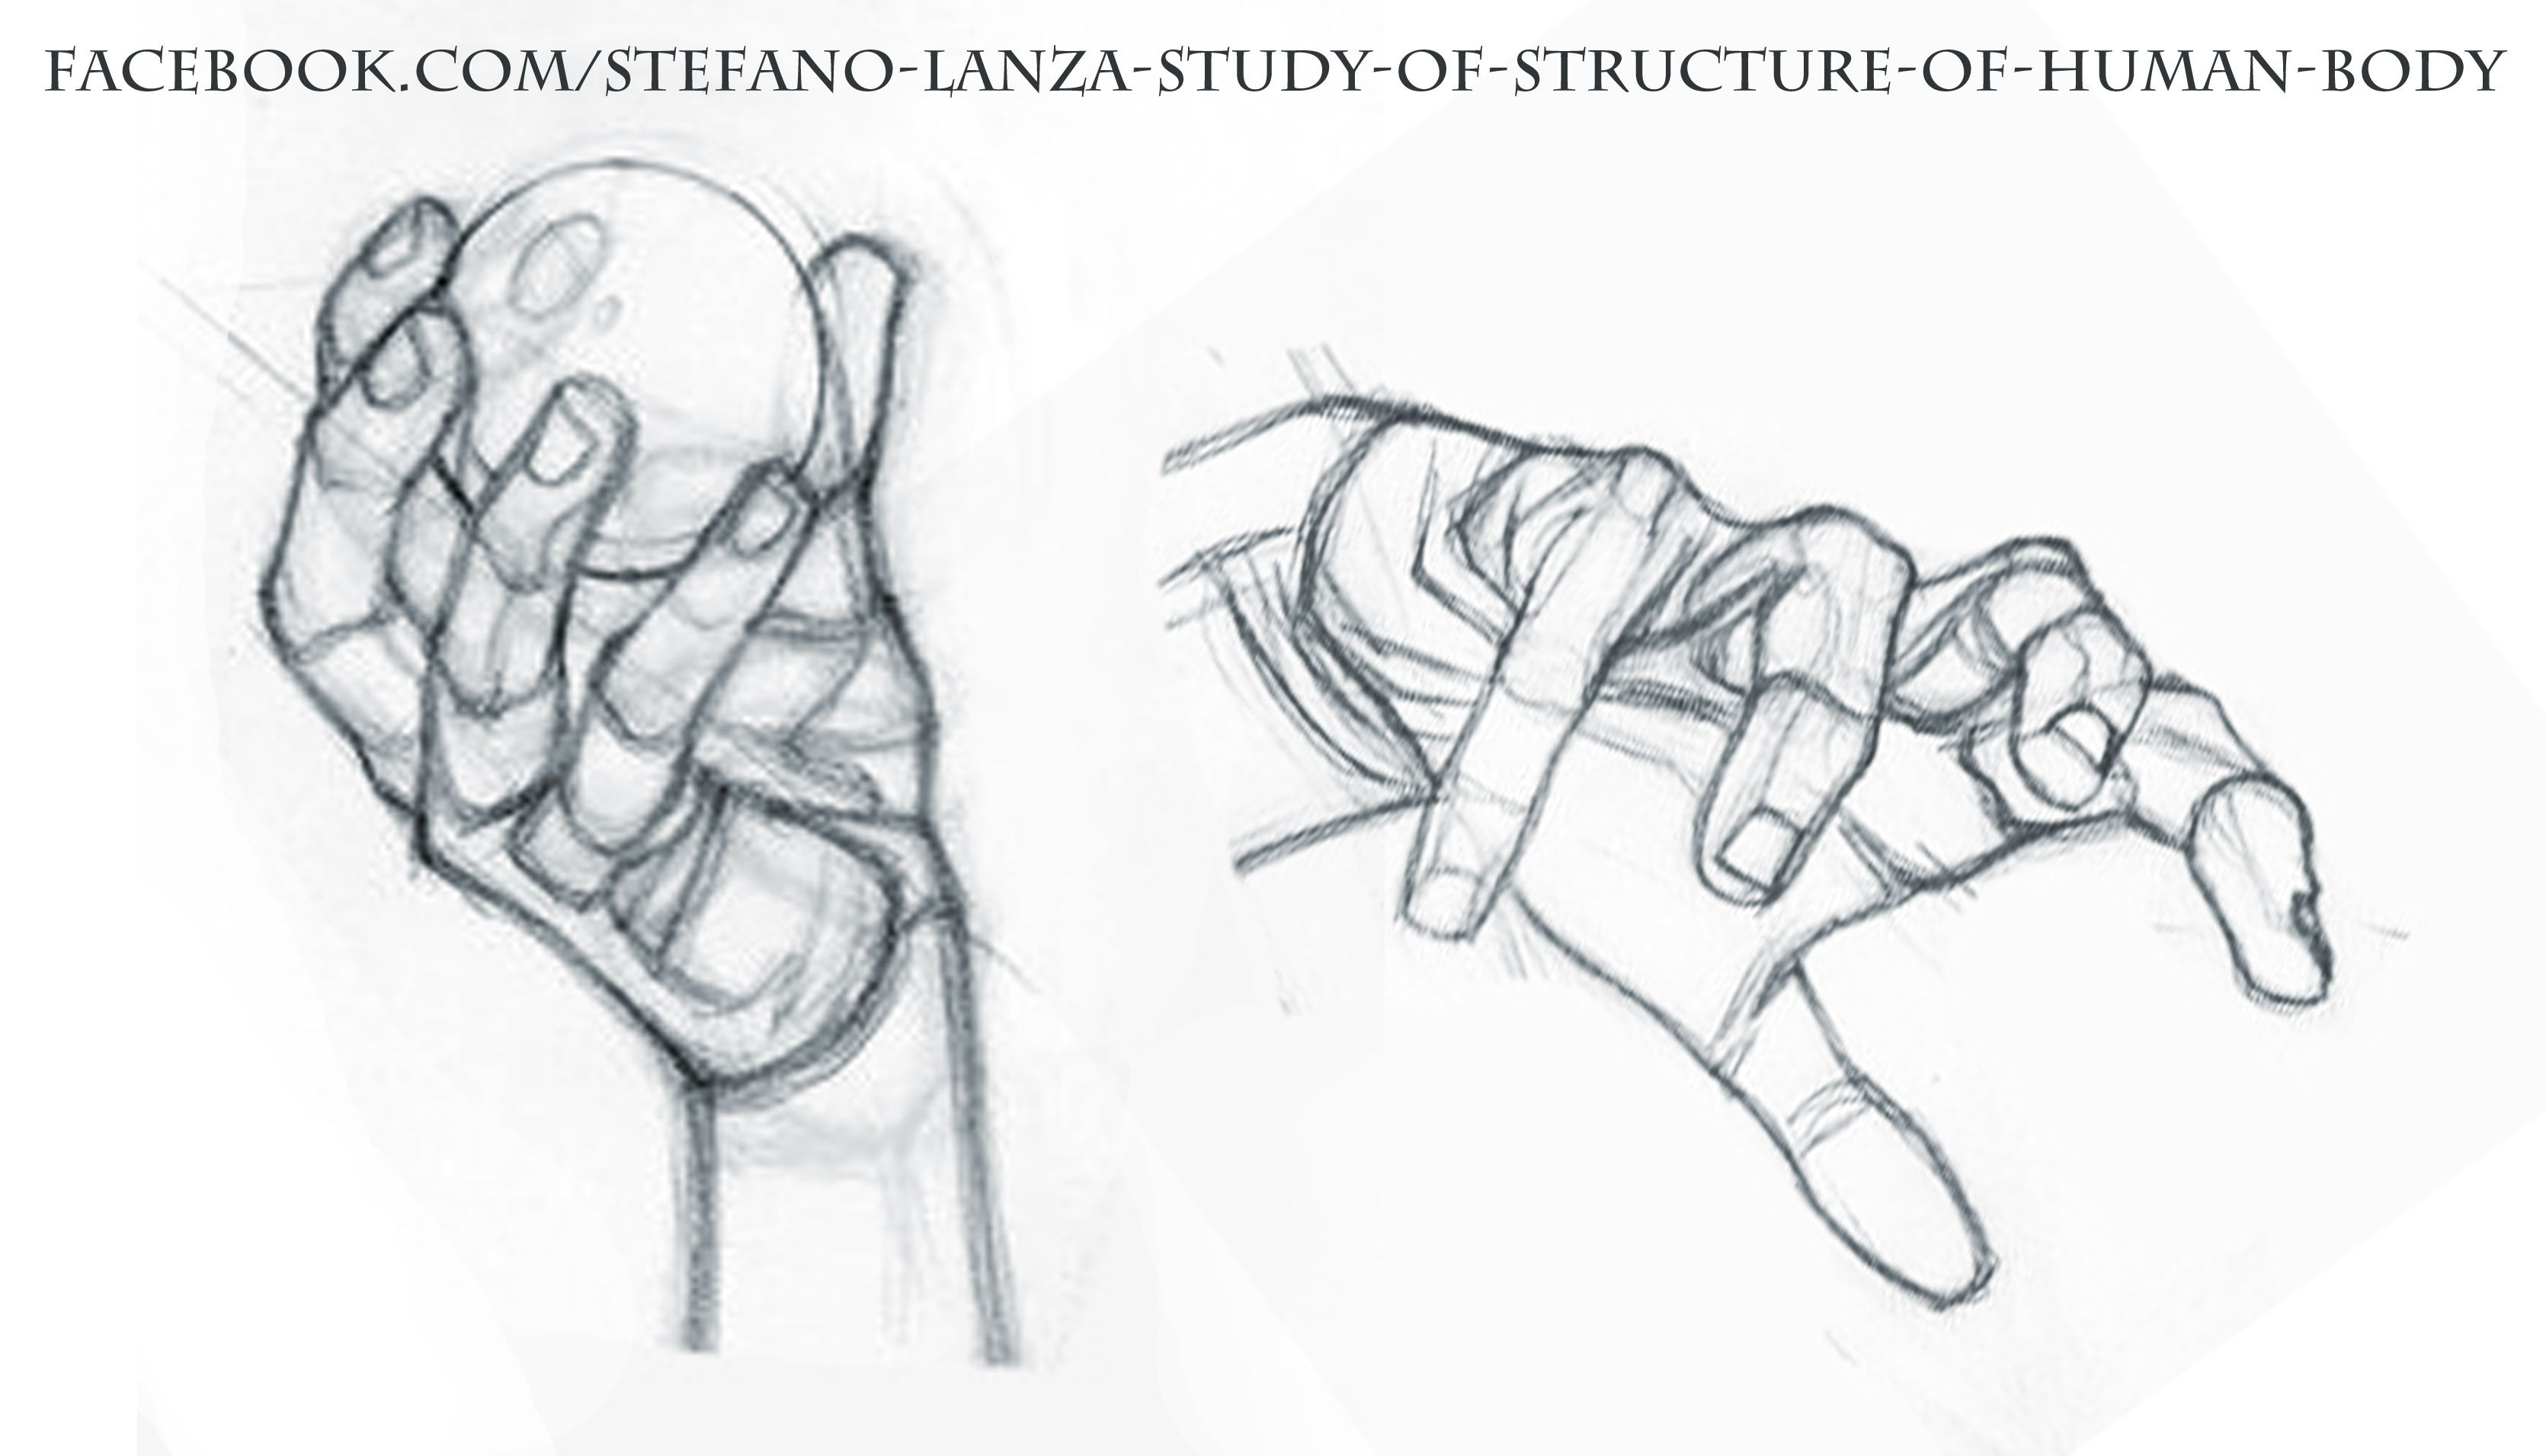 https://www.facebook.com/Stefano-Lanza-Study-of-structure-of-human ...